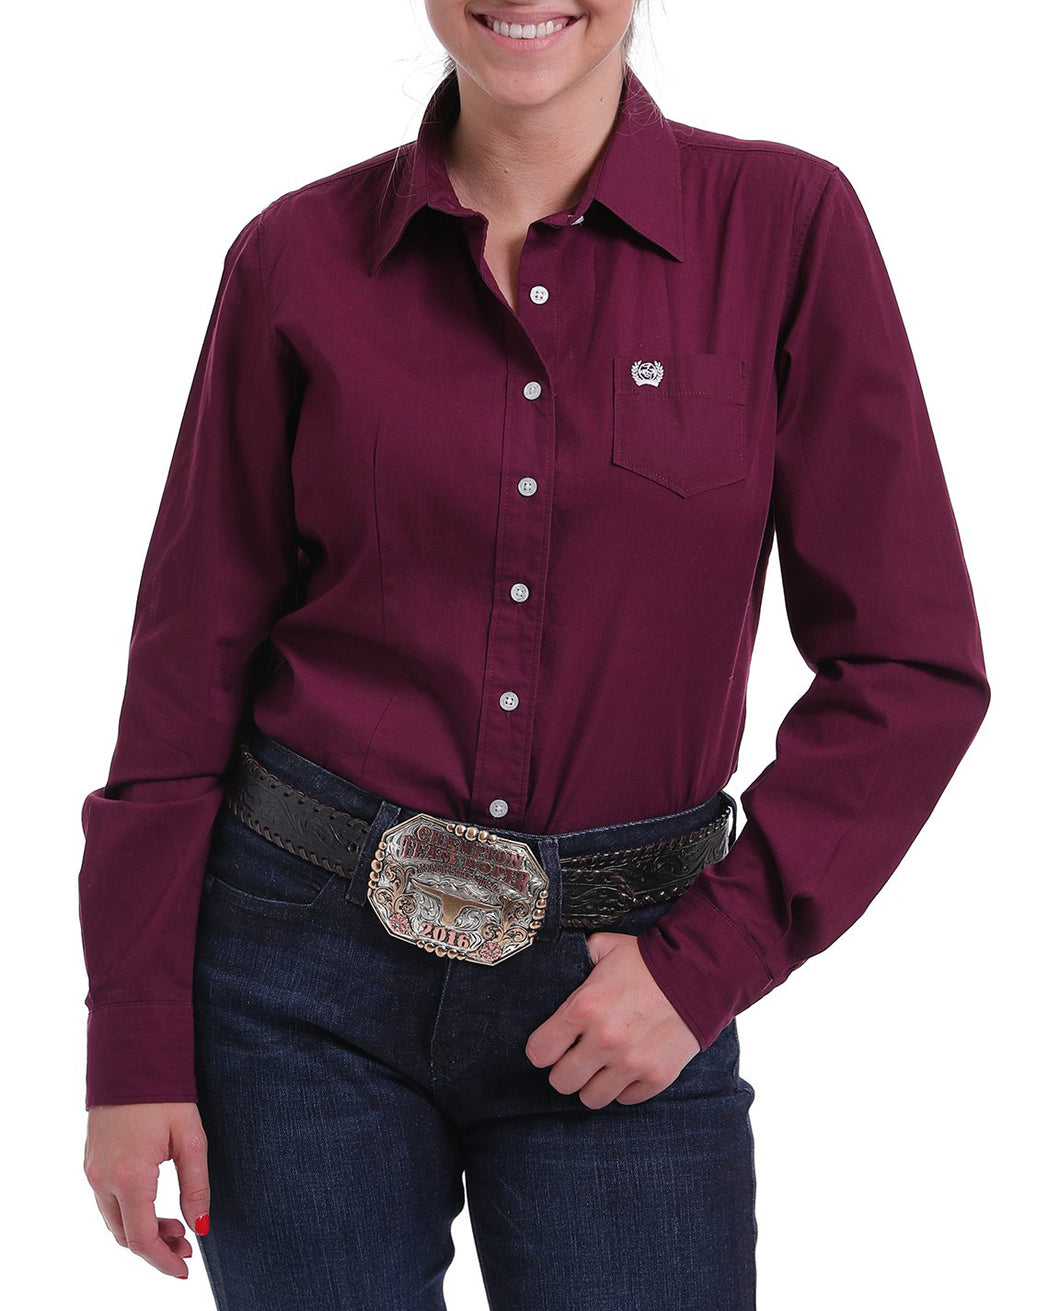 Pard's Western Shop Cinch Solid Burgundy Blouse for Women